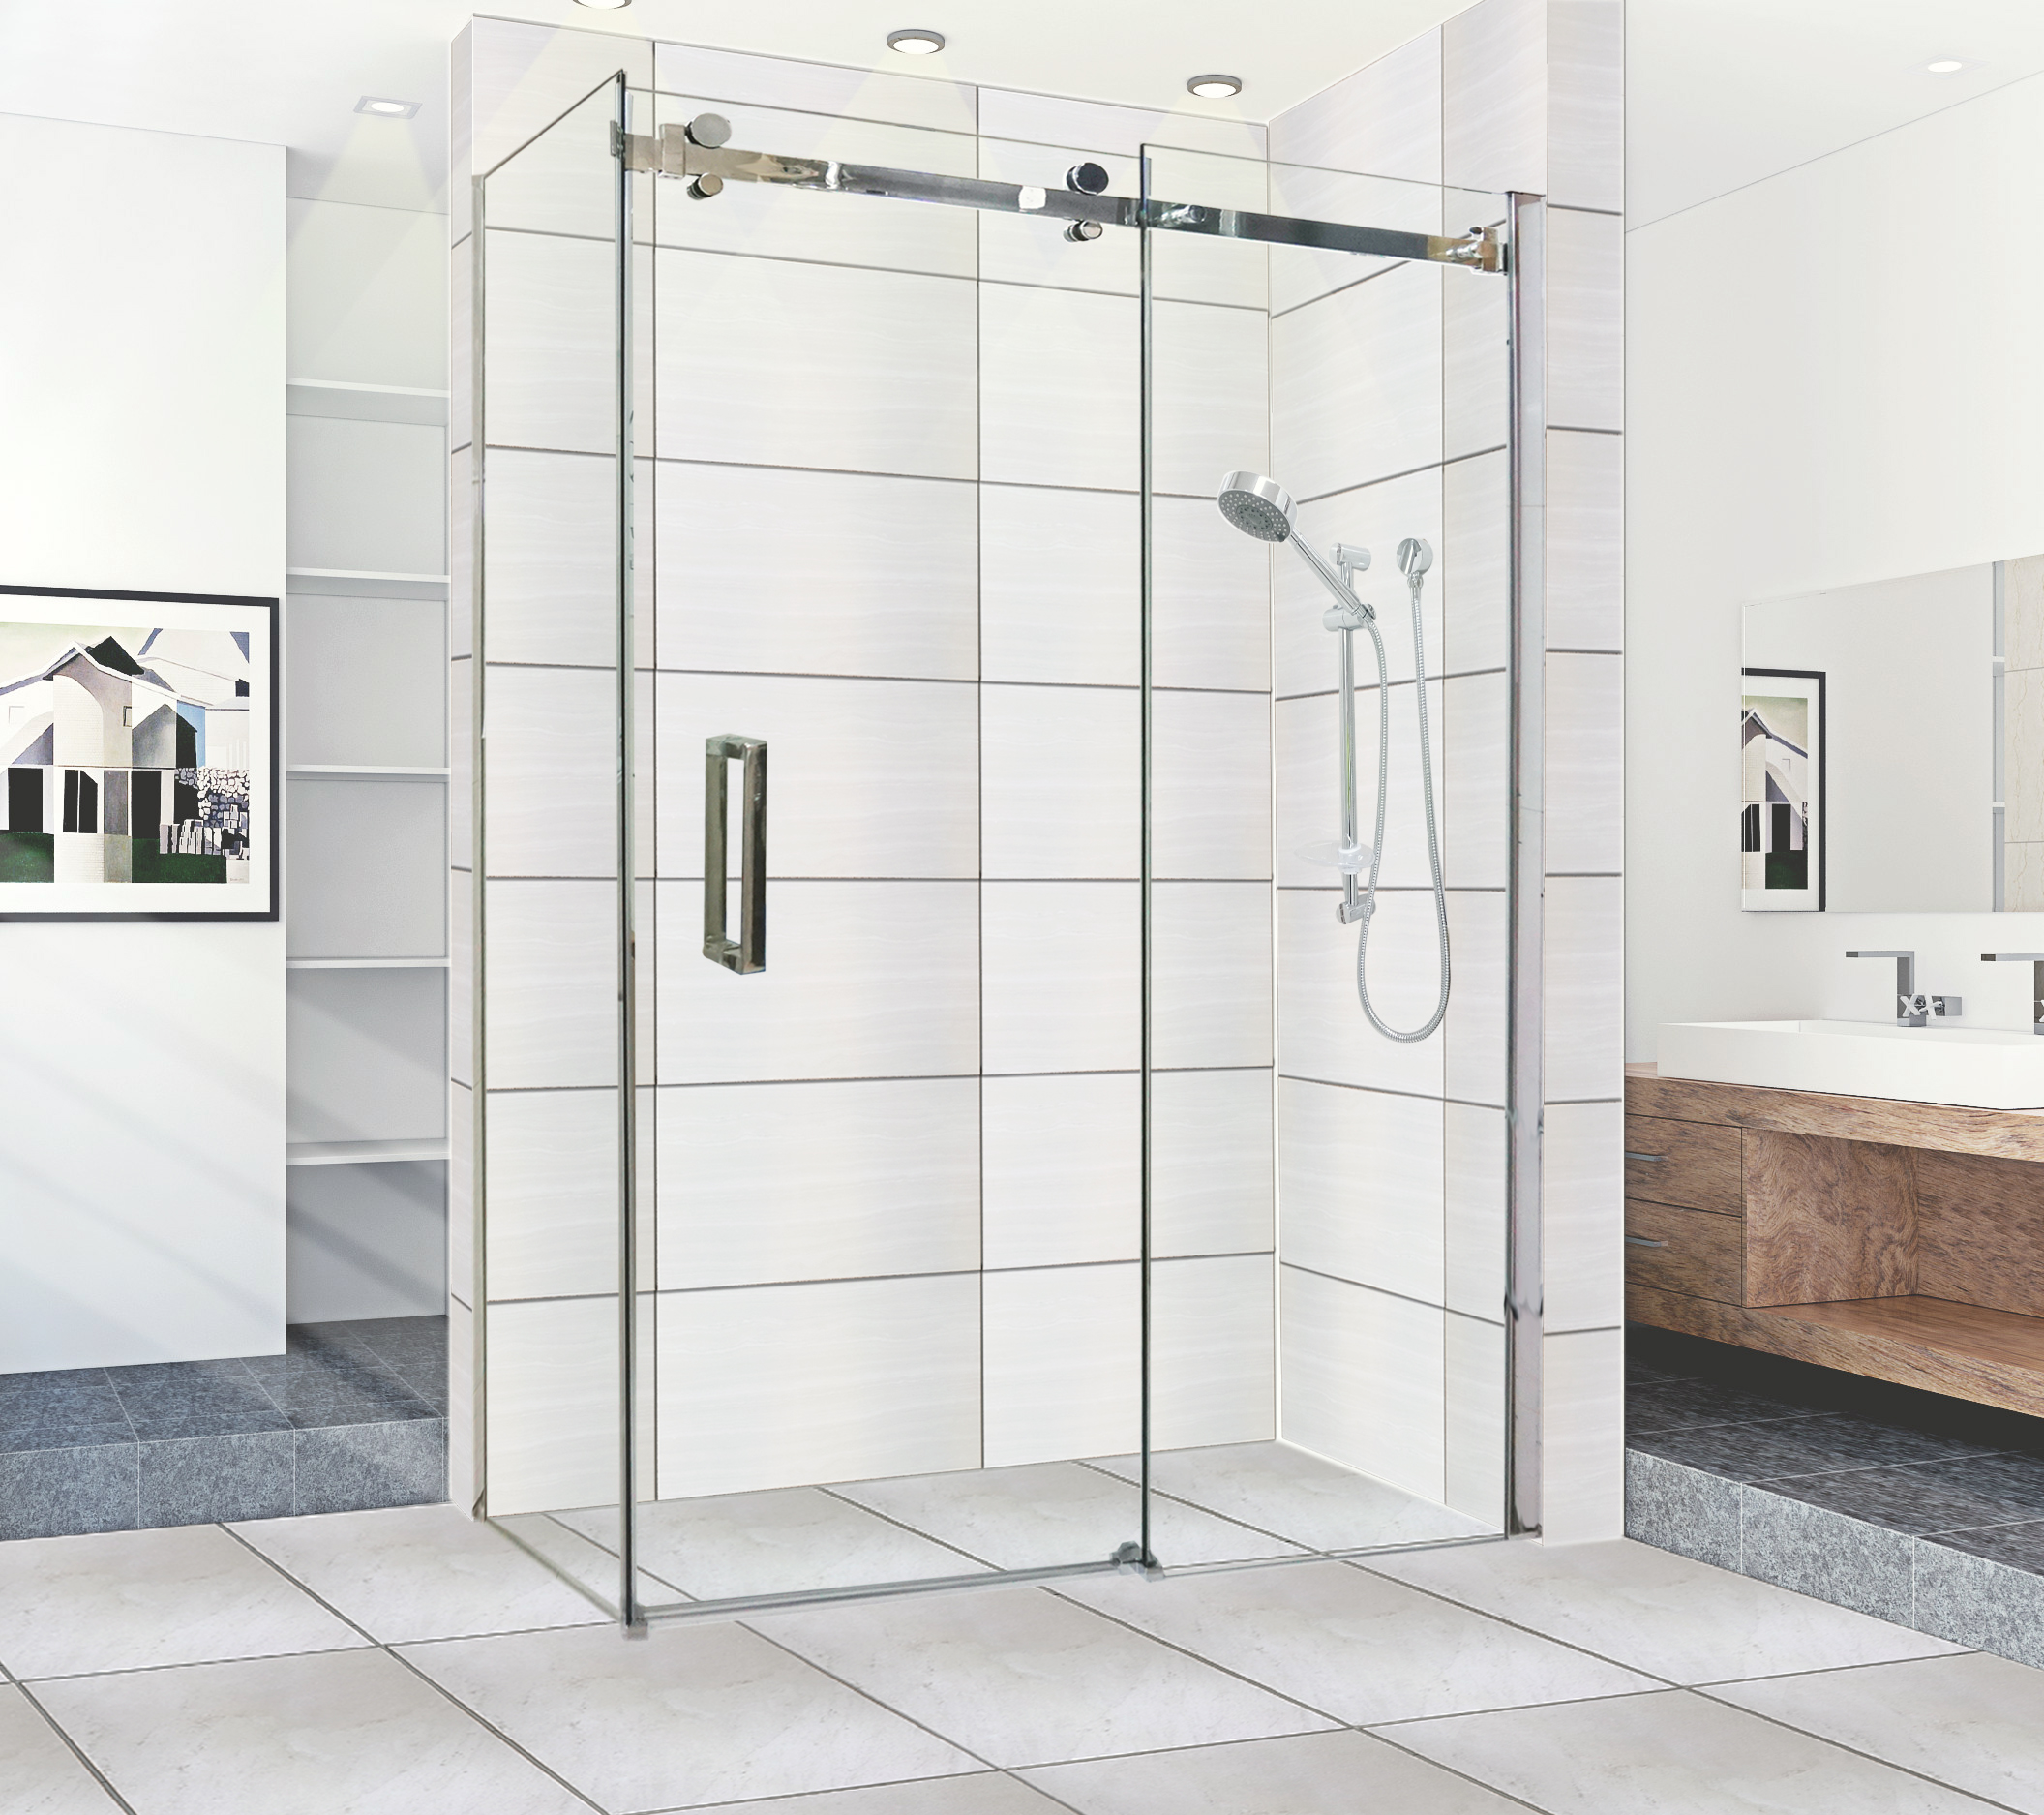 Sliding shower screen -  Clearance 1200x900x10mm Sliding Door Shower Screen Sale